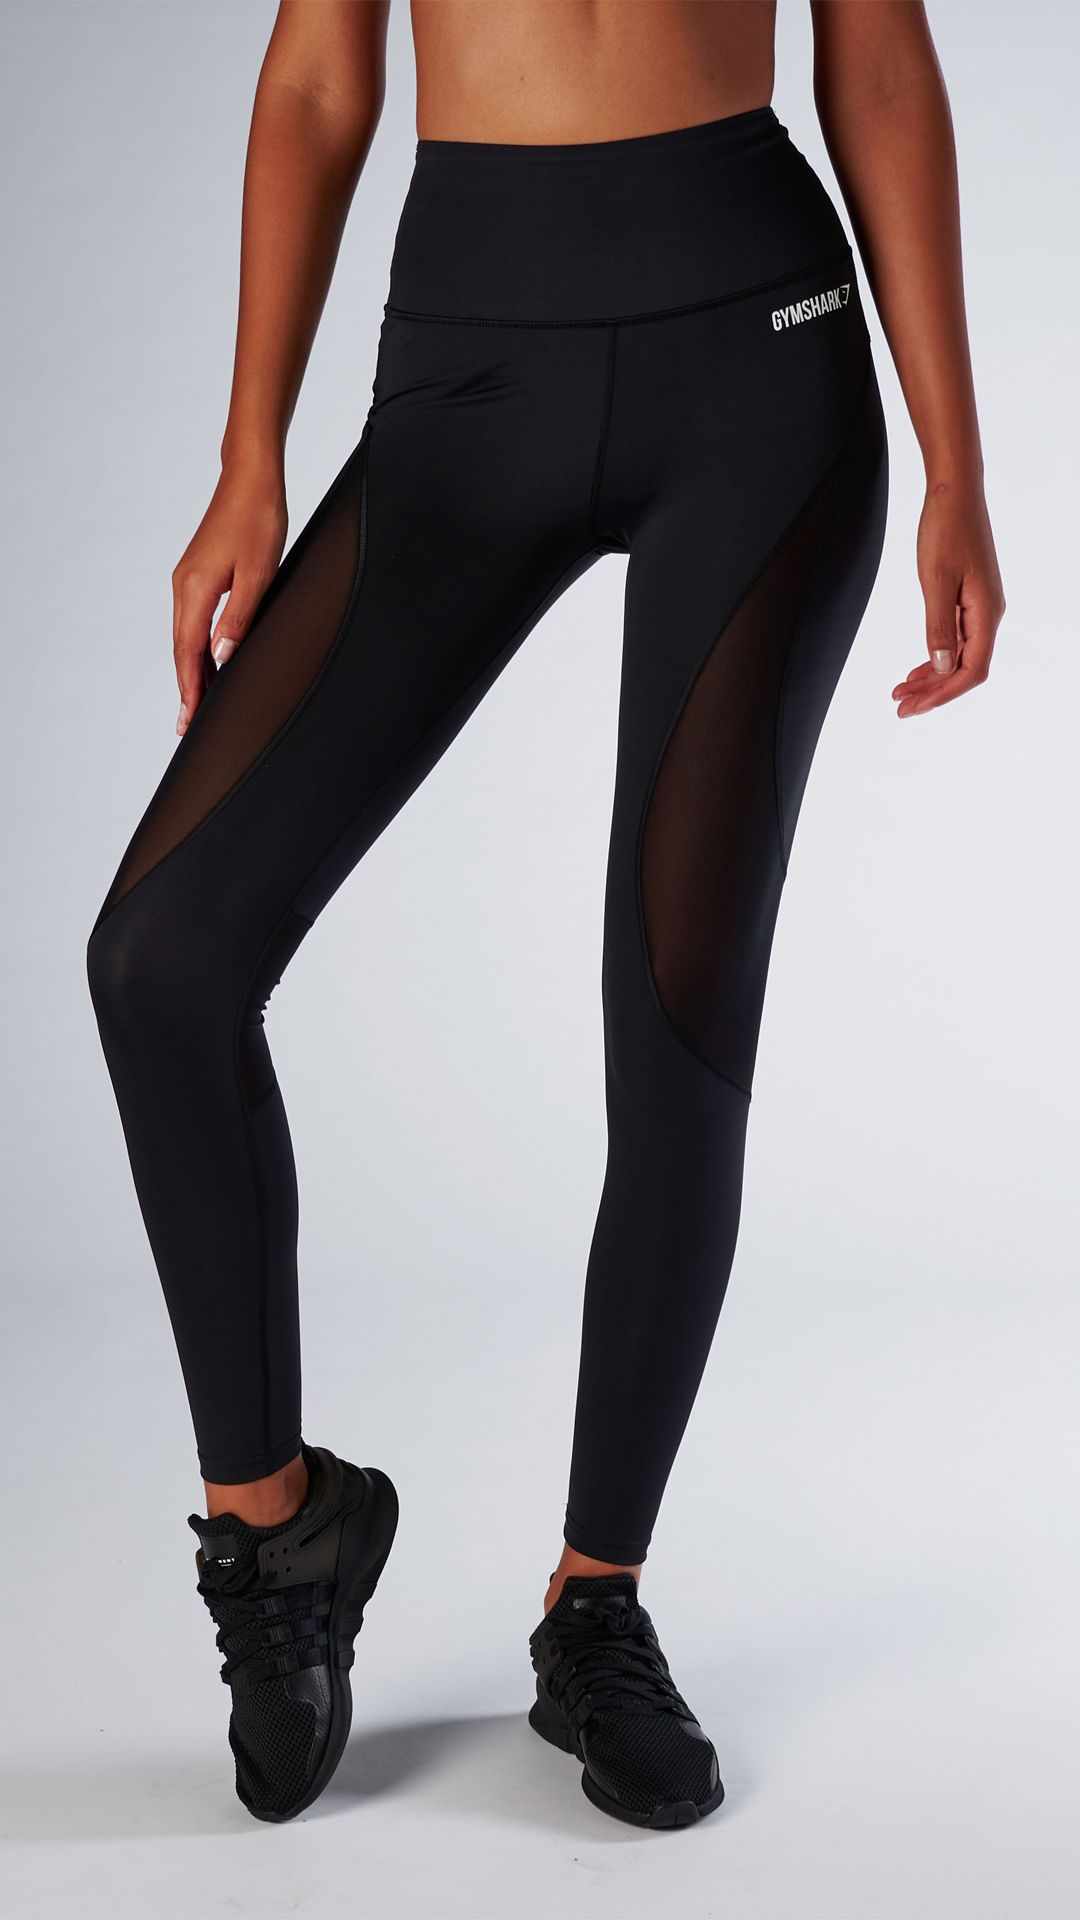 603f3874e53aac High waisted and figure sculpting, you can't go wrong with the beautifully  unique Women's Fusion Leggings.